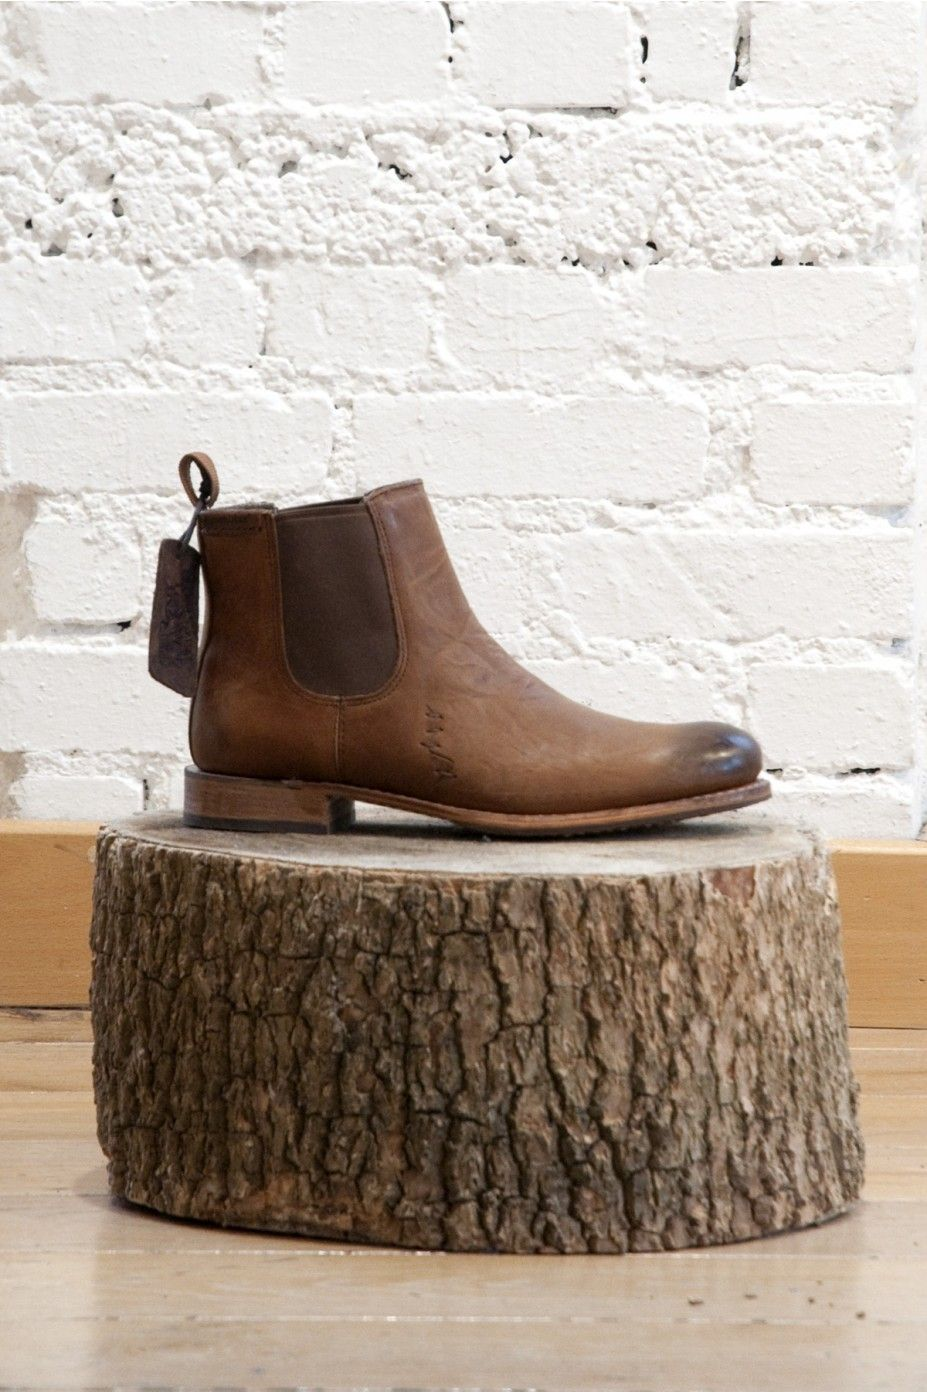 Great Caterpillar Chelsea Boots (The